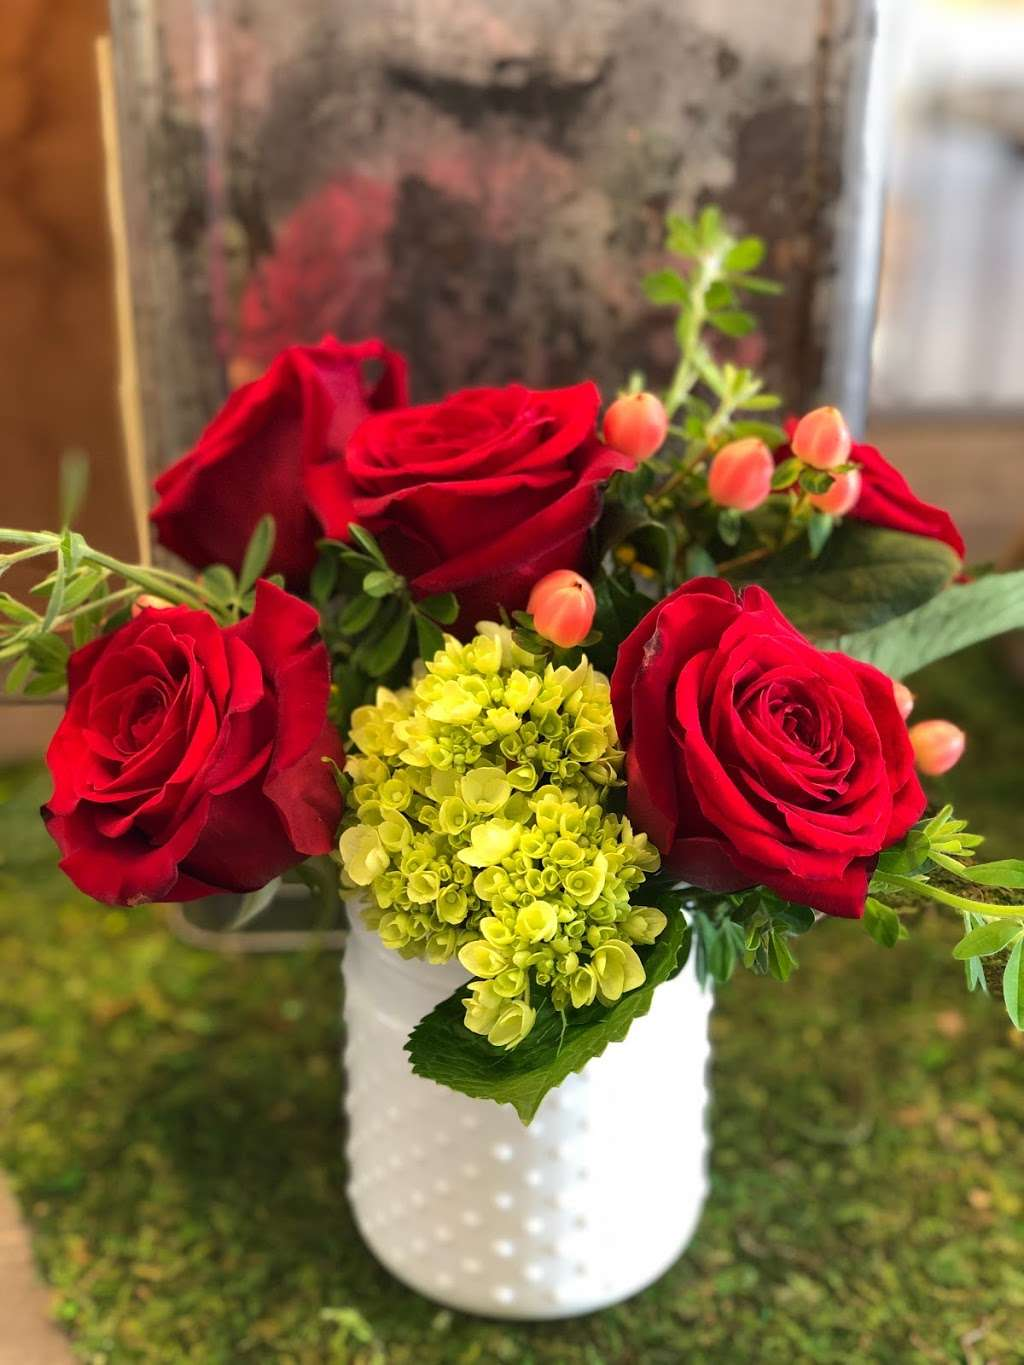 Desert Poppy, LLC - florist  | Photo 2 of 10 | Address: 8880 E Vía Linda Suite 113, Scottsdale, AZ 85258, USA | Phone: (480) 272-7973